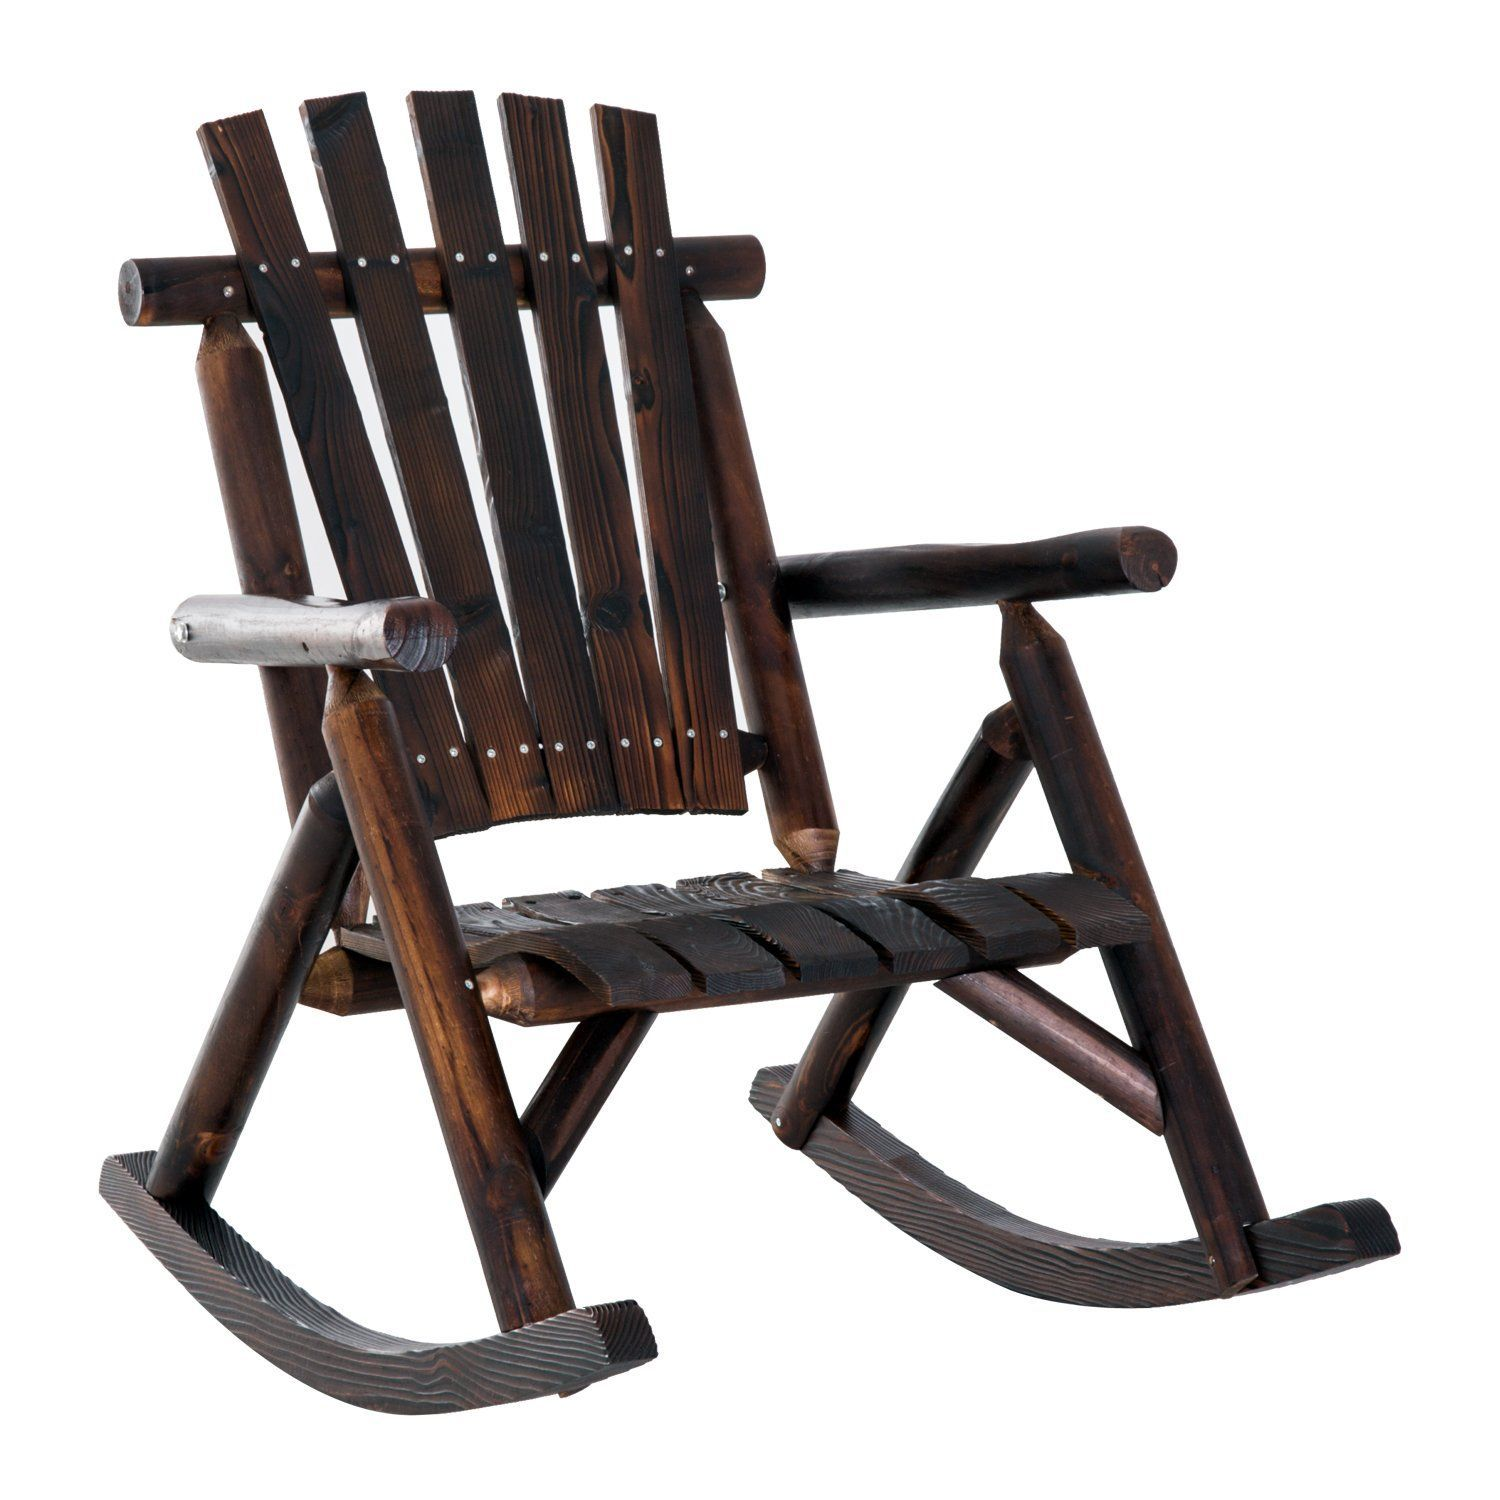 Adirondack Chairs For Sale In 2020 Rocking Chair Adirondack